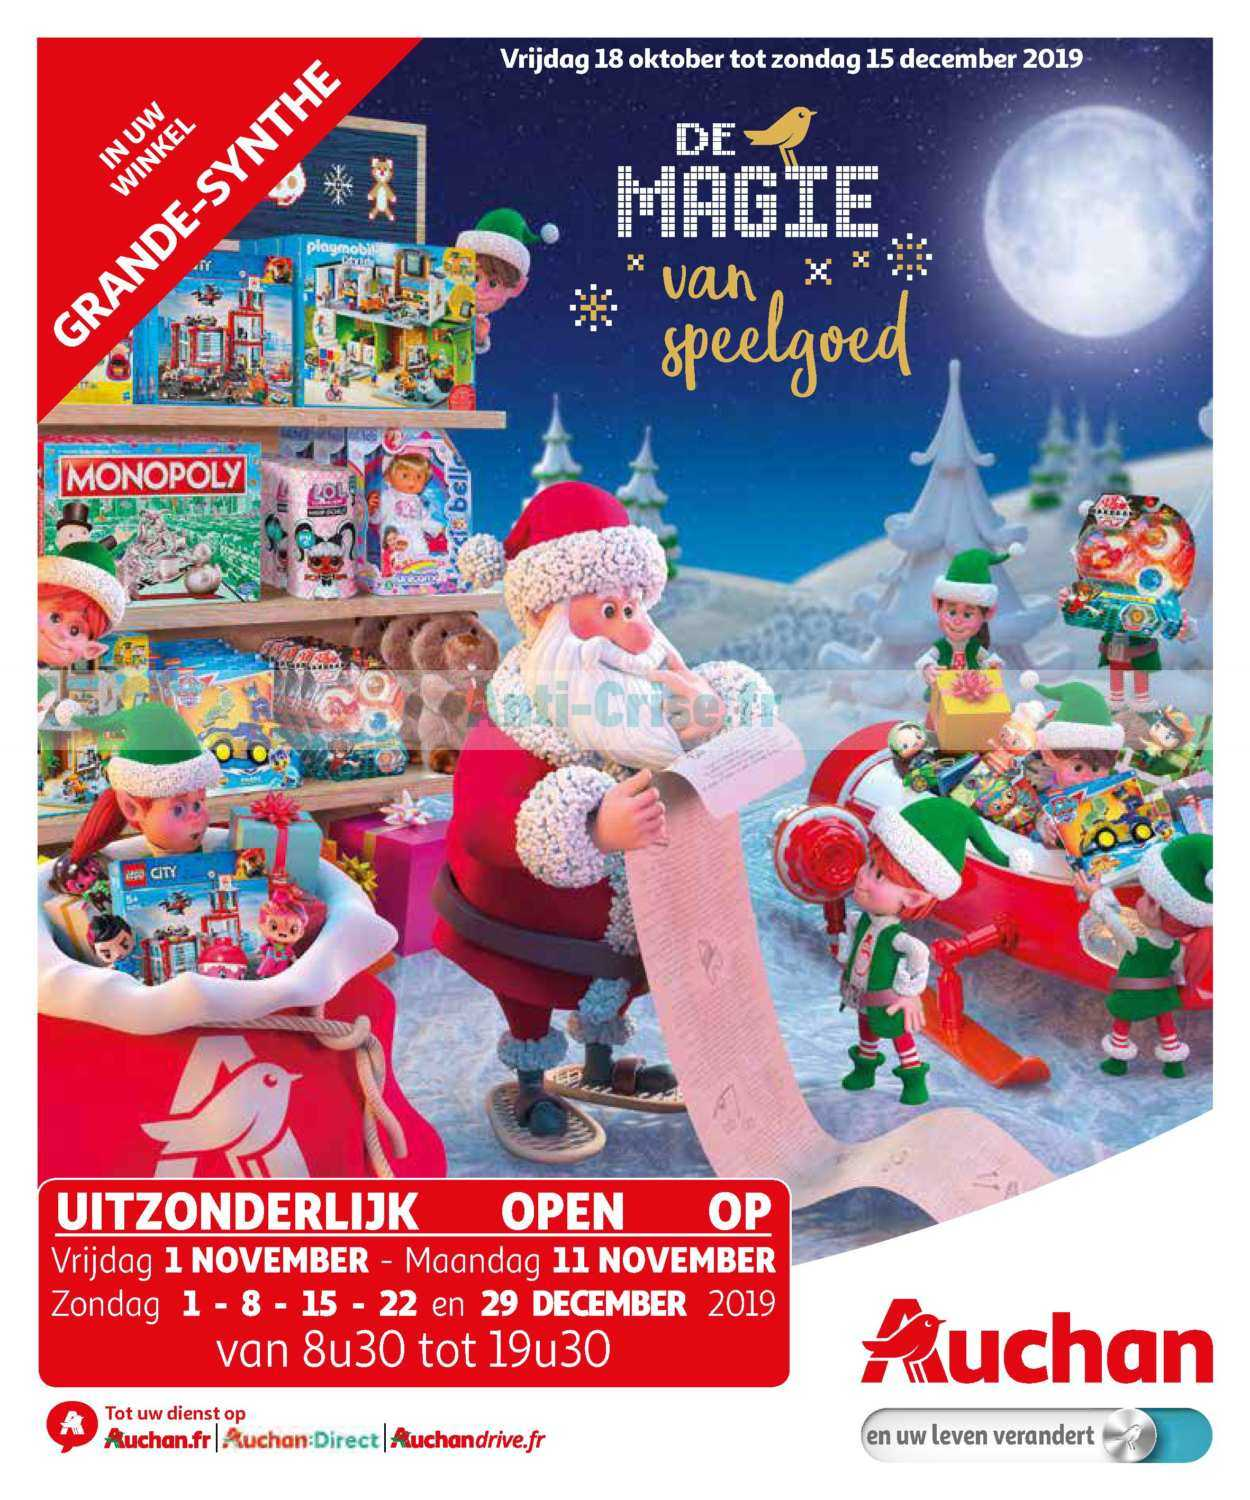 https://media.anti-crise.fr/2019/10/decembre2019auchan-local1810201915122019S0C0dunkerque-1-250x300.jpg